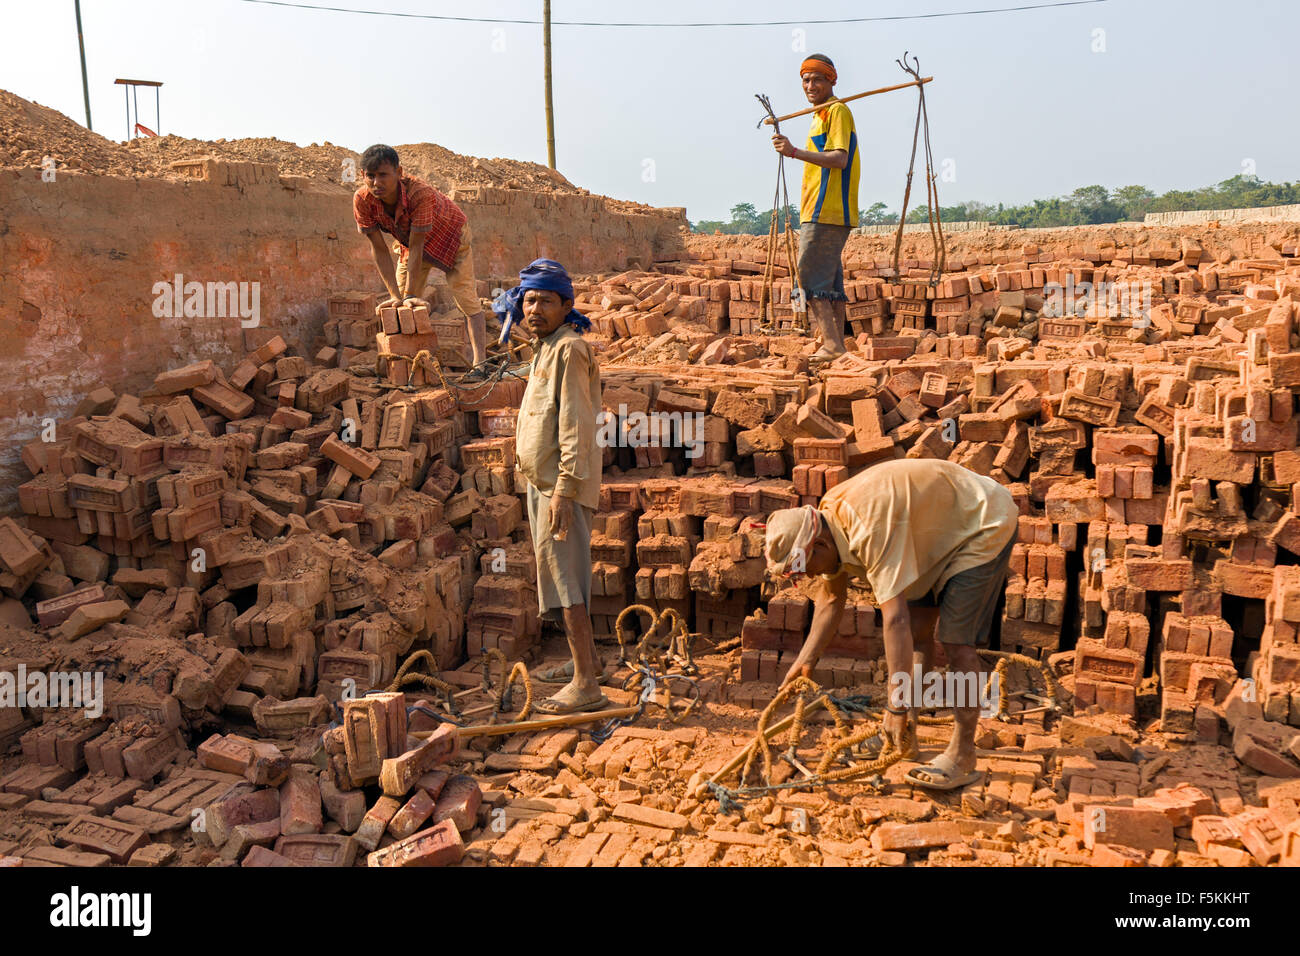 Burnt Clay Brick : Workers are taking out burnt clay bricks of the kiln a